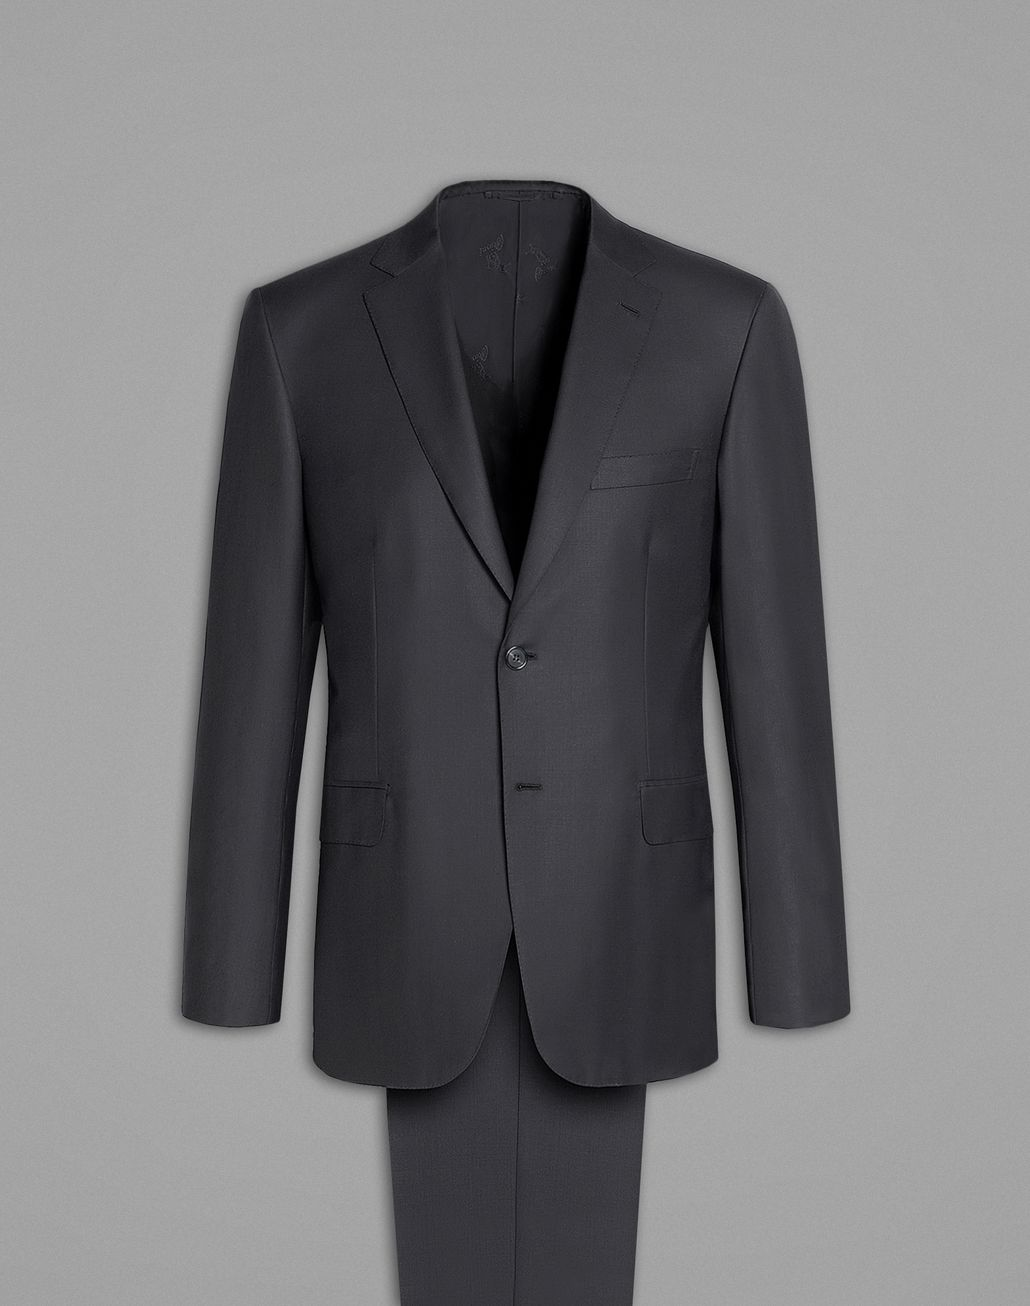 BRIONI 'Essential' Grey Brunico Suit Suits & Jackets Man f